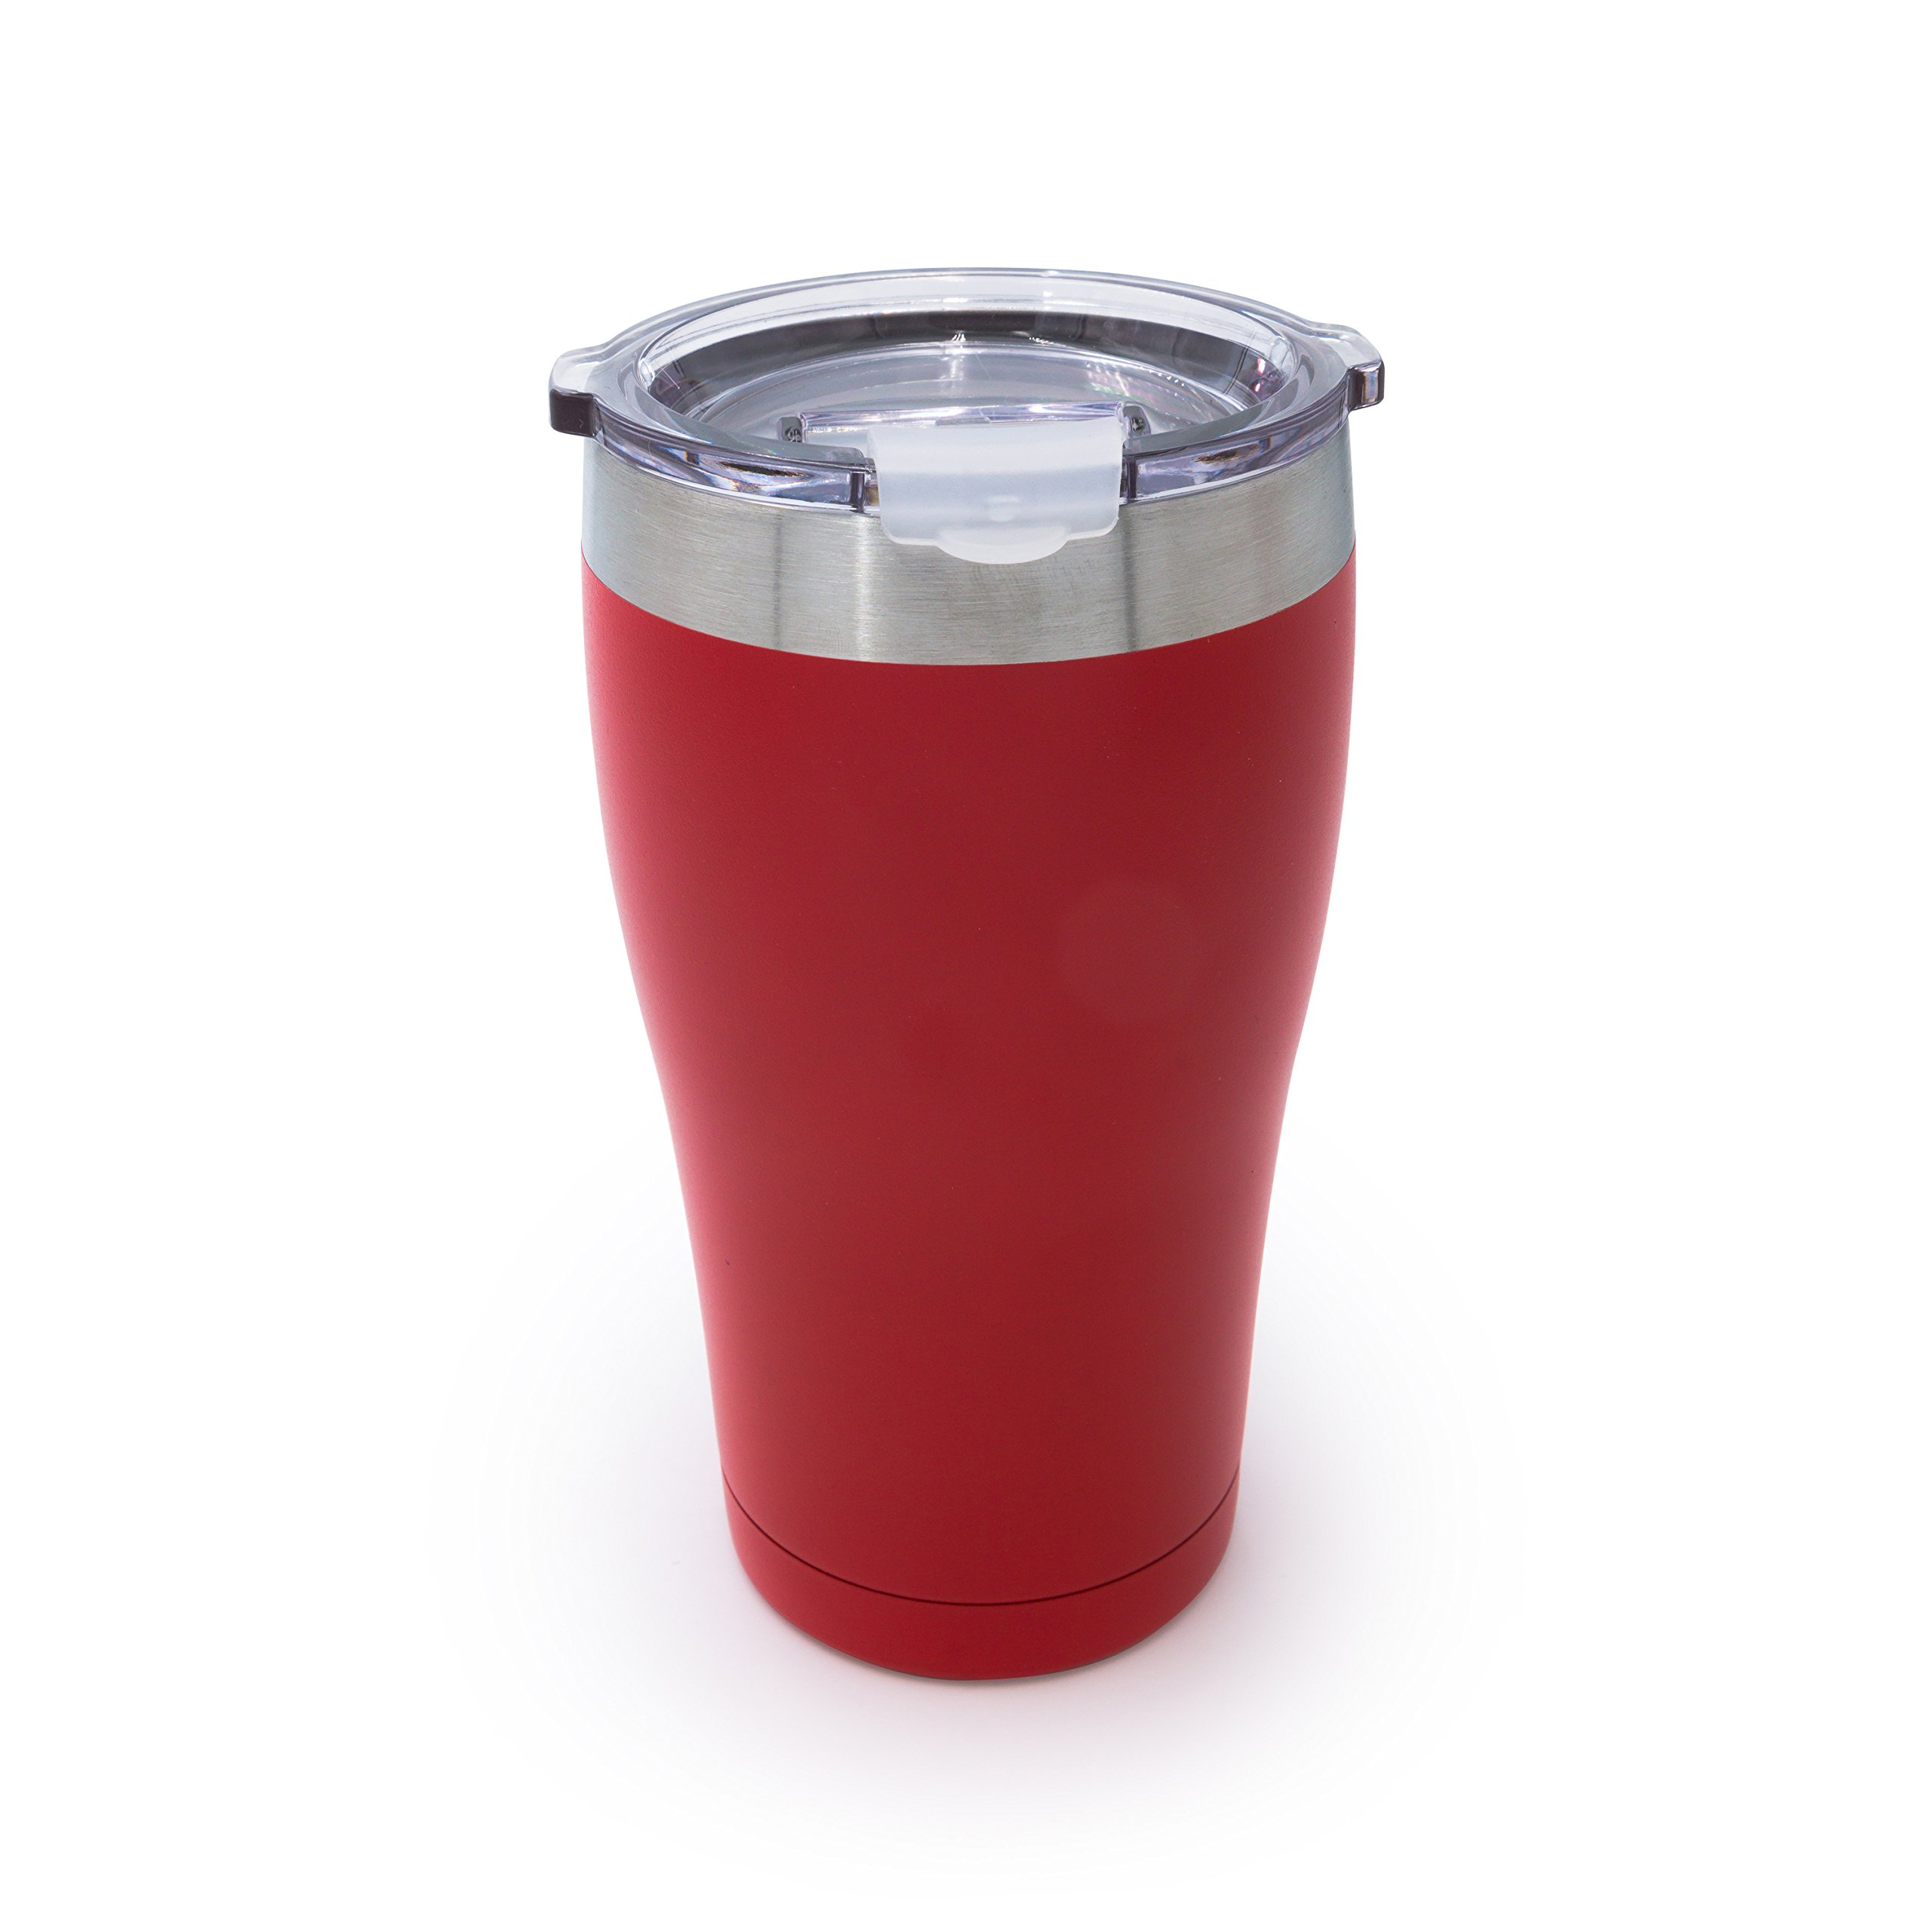 Tahoe Trails Stainless Steel Tumbler Vacuum Insulated Double Wall Travel Cup with Lid (red, 16oz)